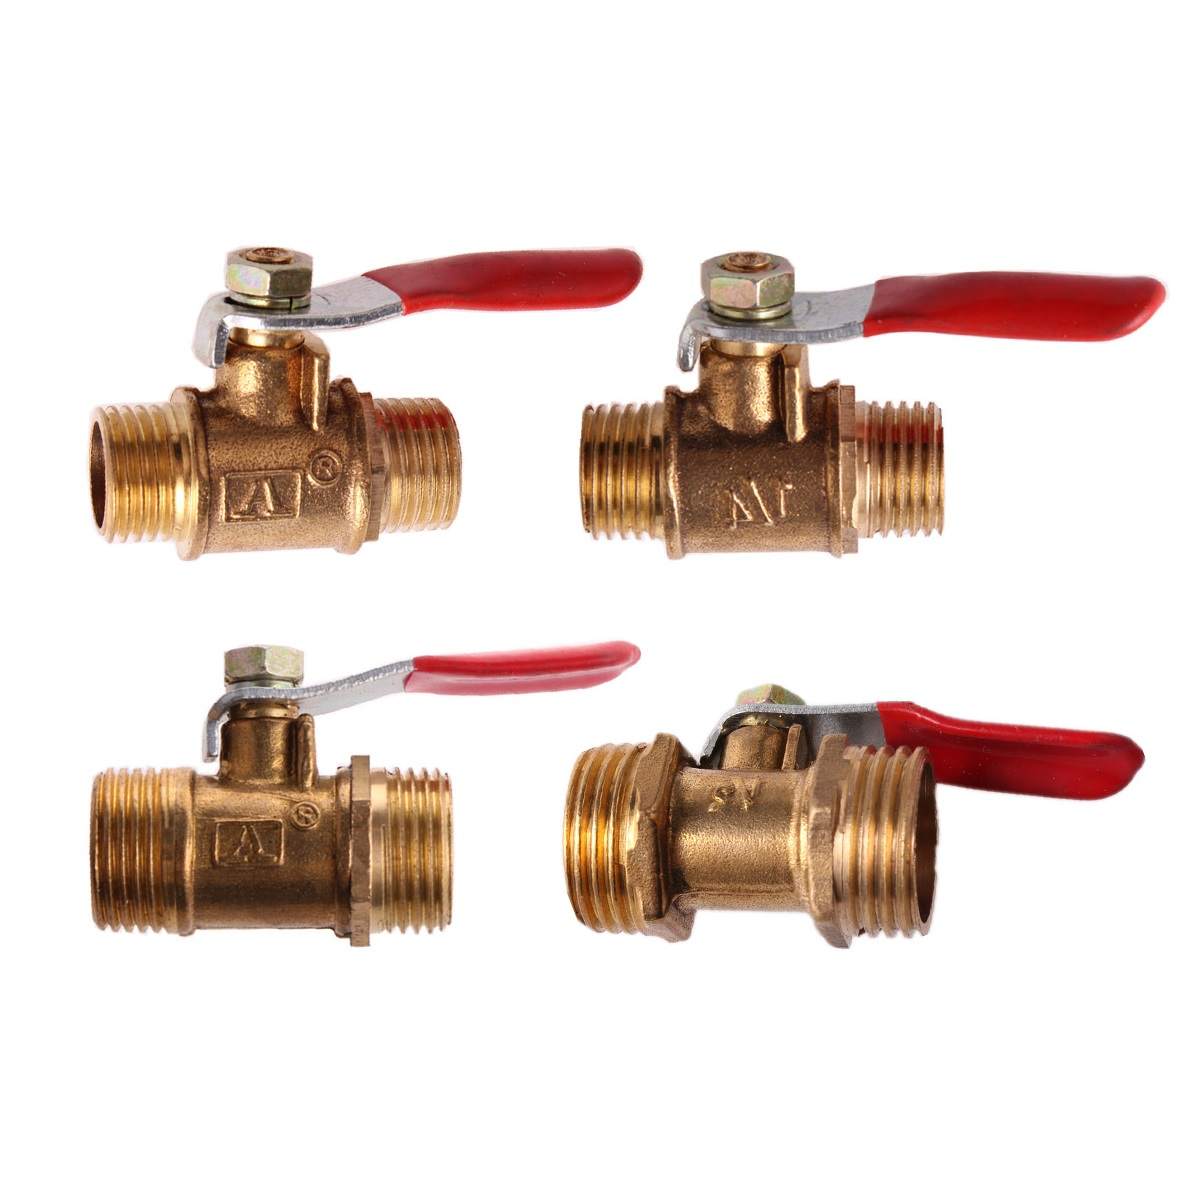 Brass Ball Valve 1/8 1/4 3/8 1/2 Male to Male BSP Thread with Red Lever Handle Connector Joint Pipe Fitting Coupler Adapter image